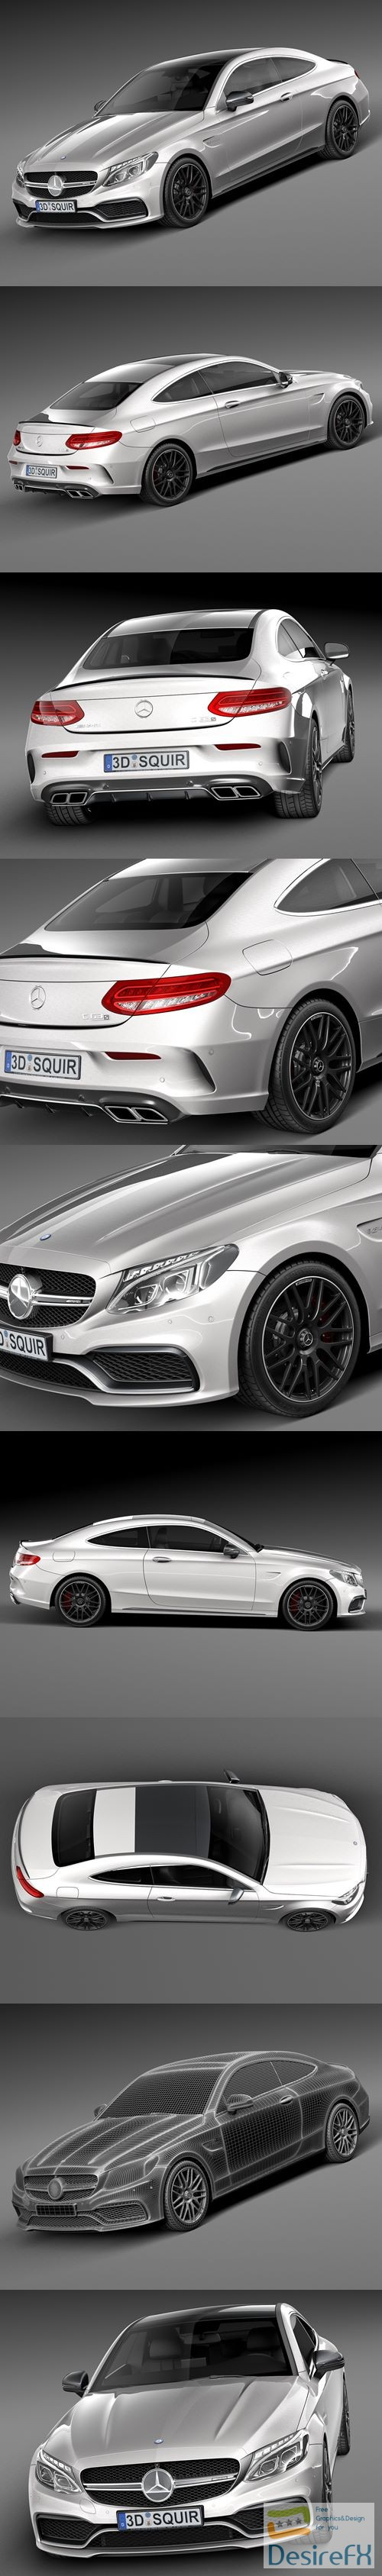 Mercedes-Benz C63 AMG Coupe 2017 3D Model